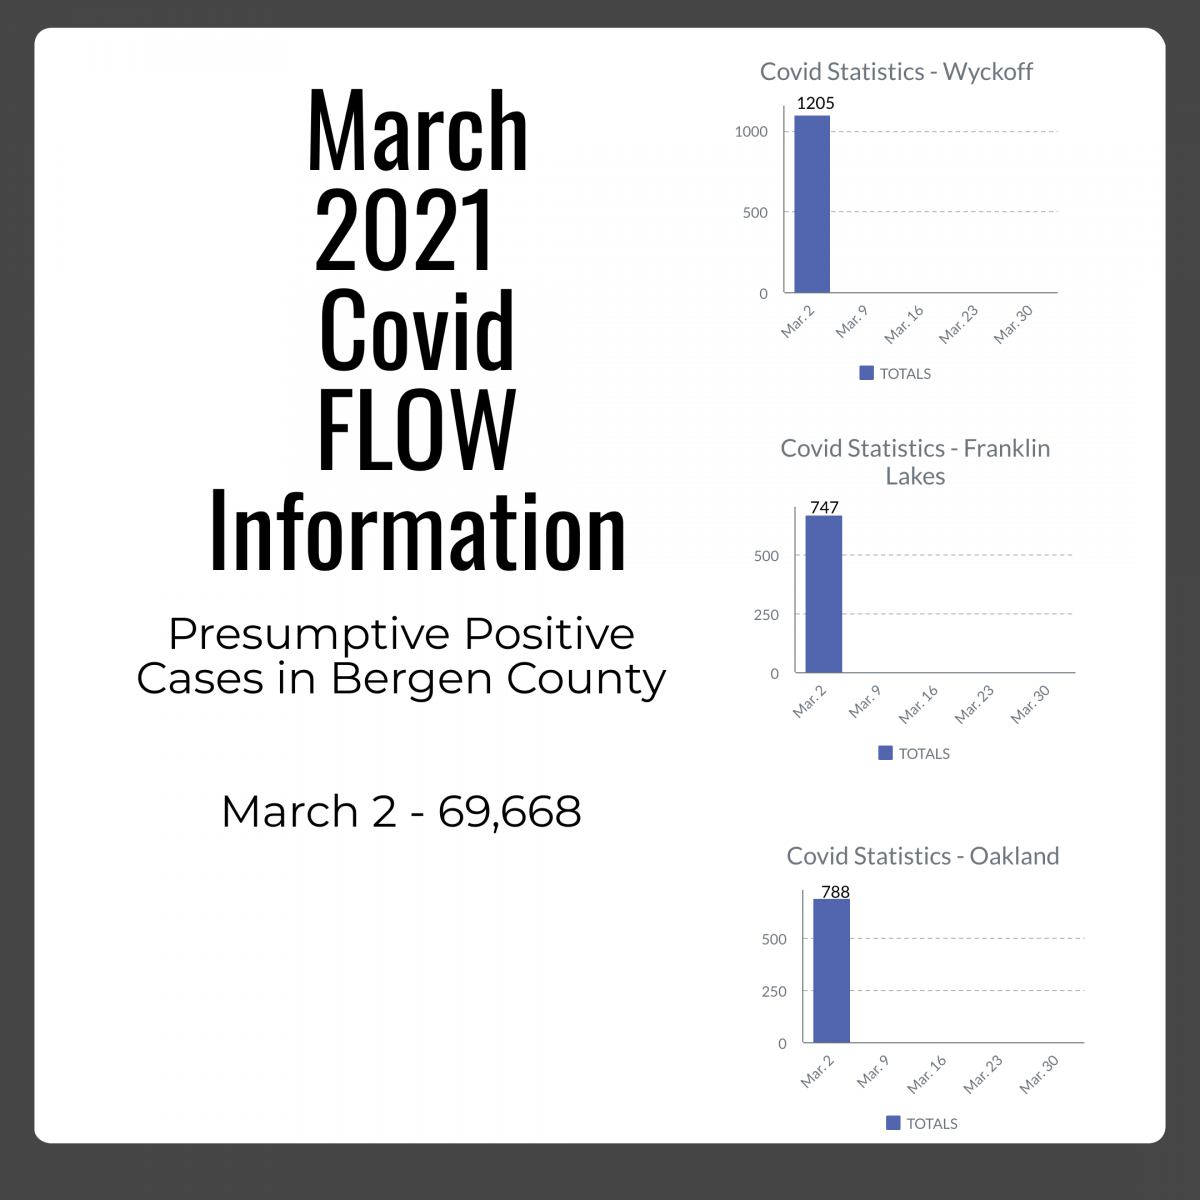 March week 1 Covid Numbers